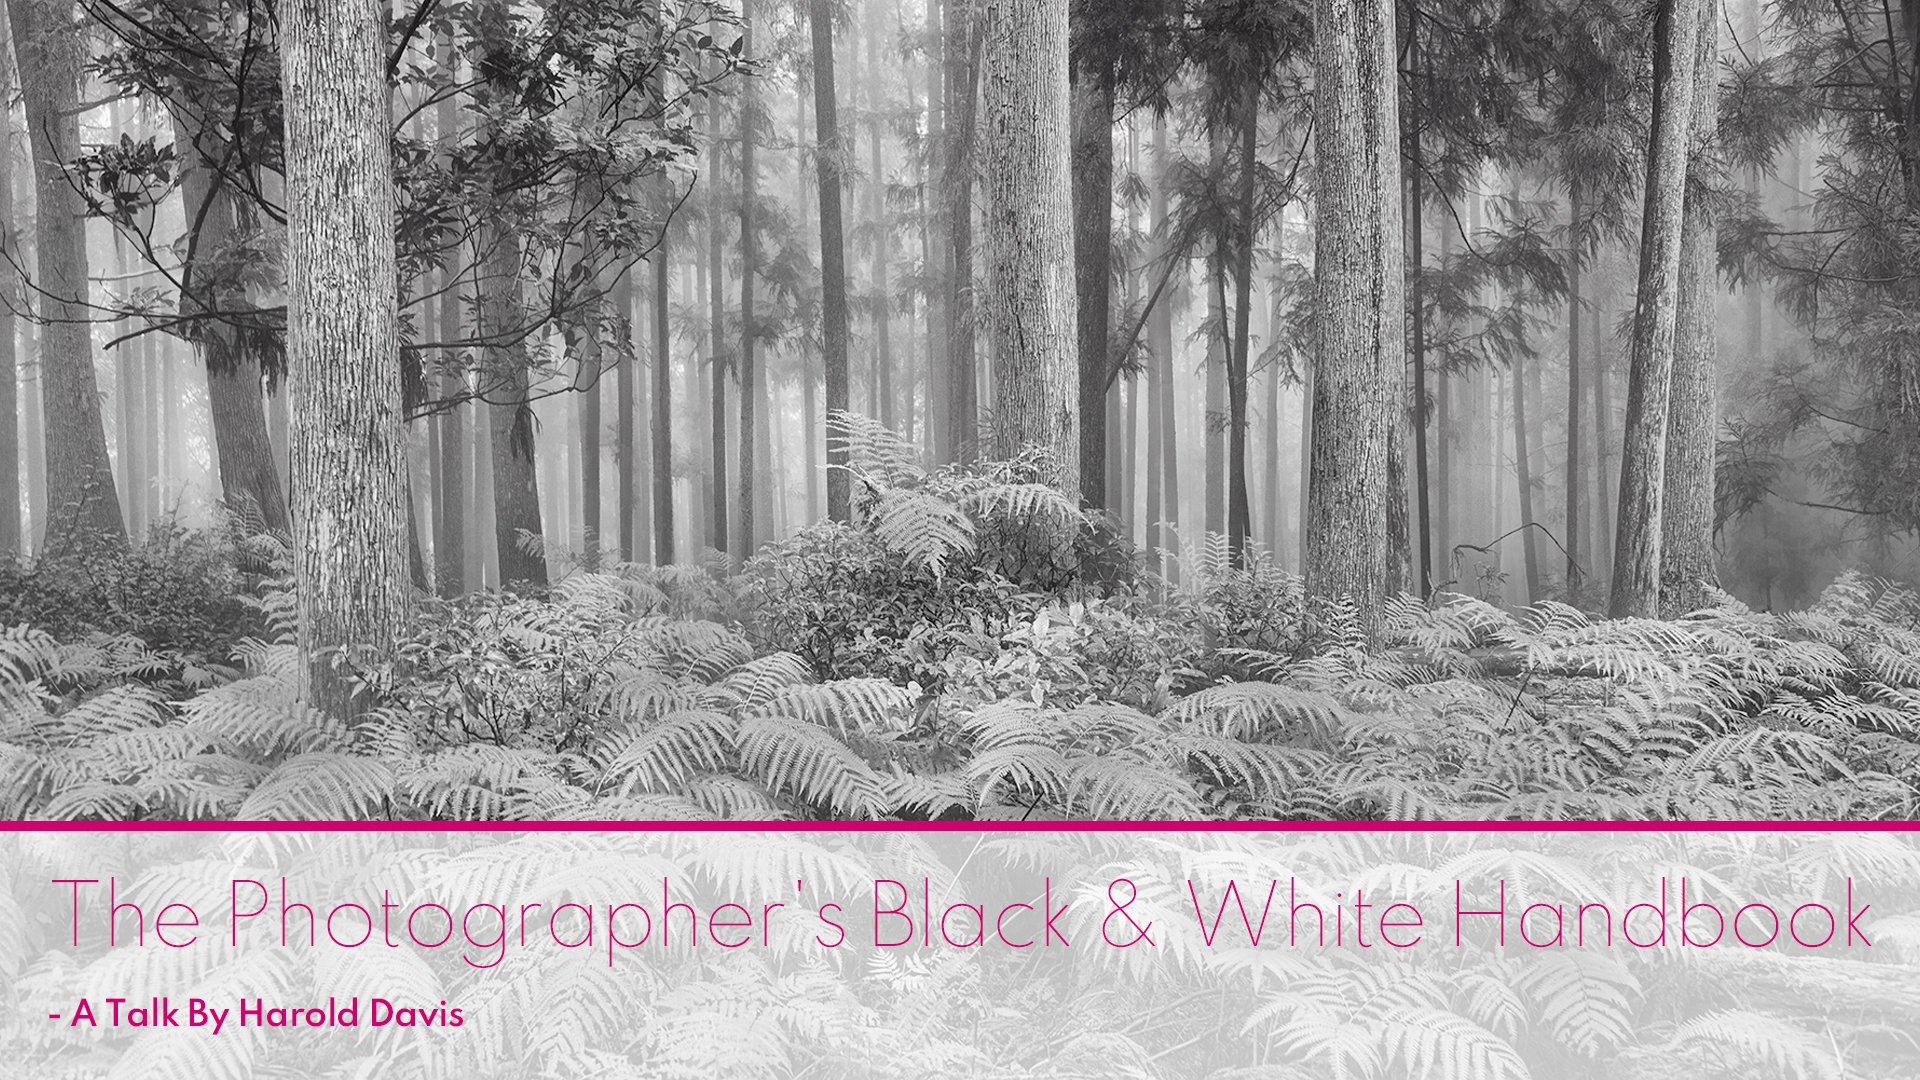 The Photographer's Black & White Handbook – A Talk By Harold Davis